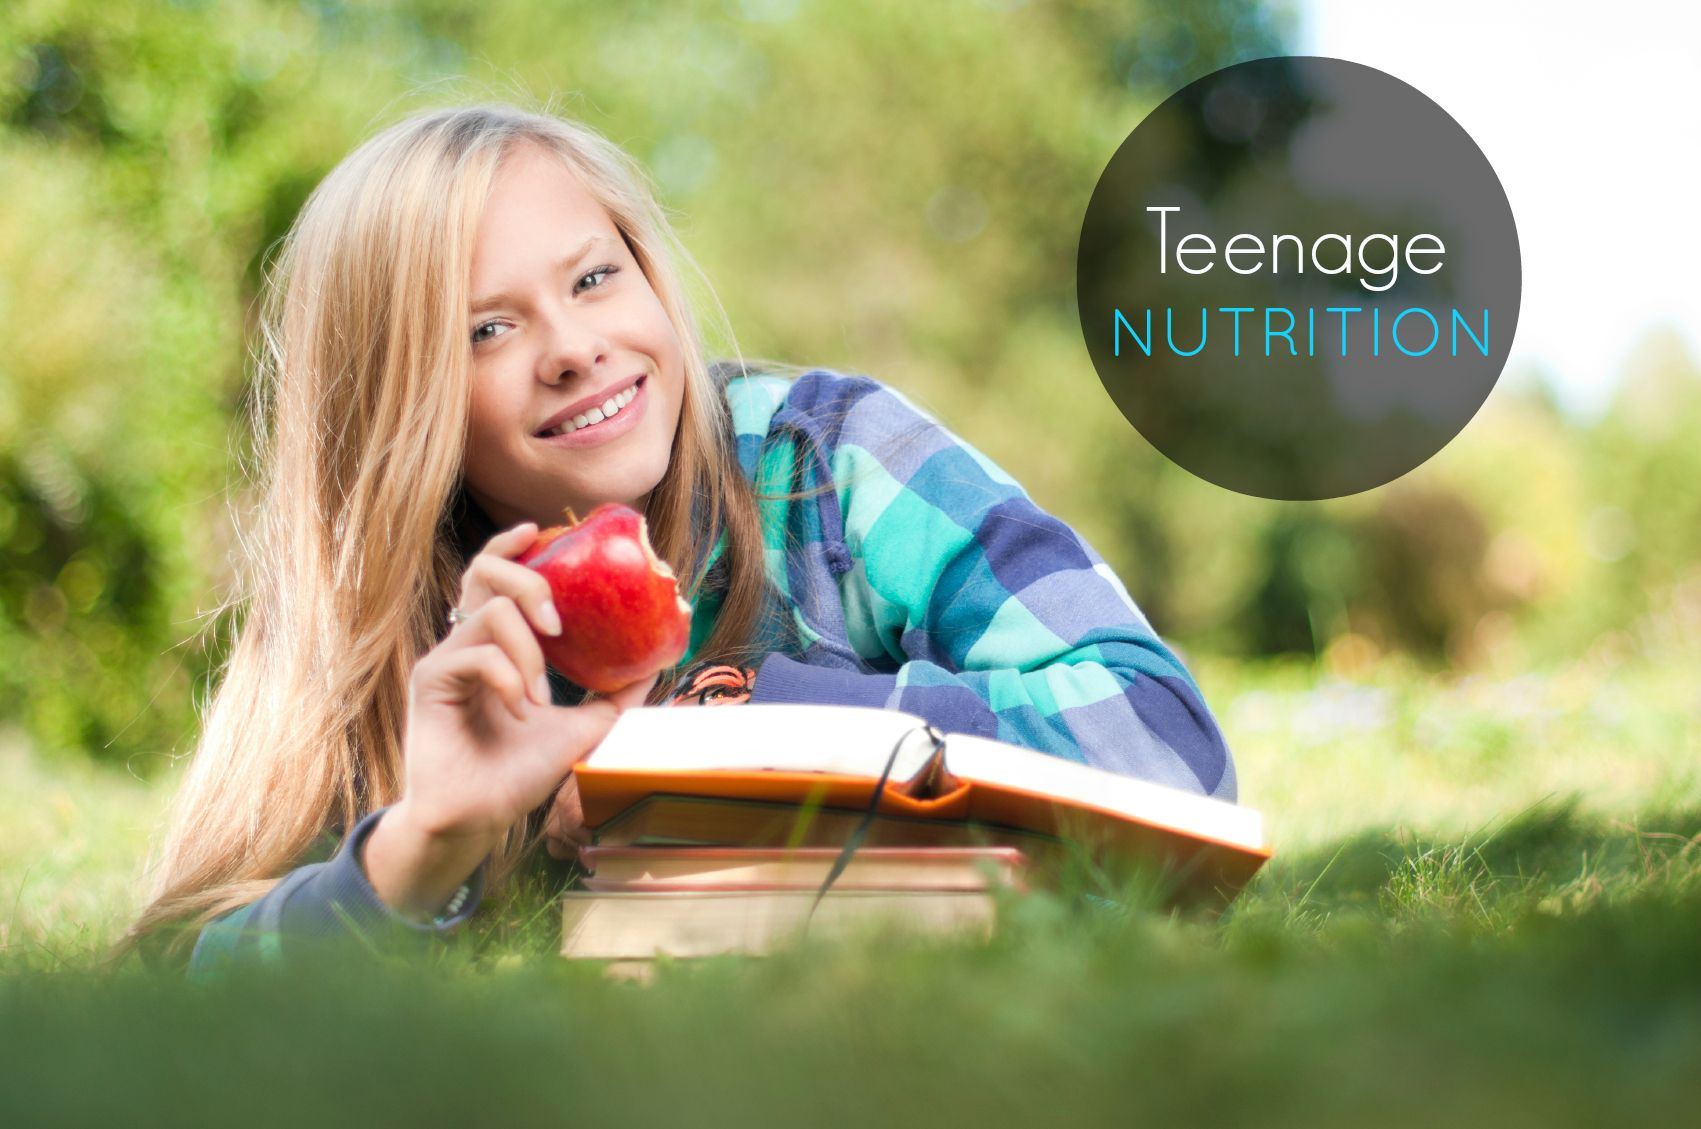 Click here to discover the secrets to teenage nutrition